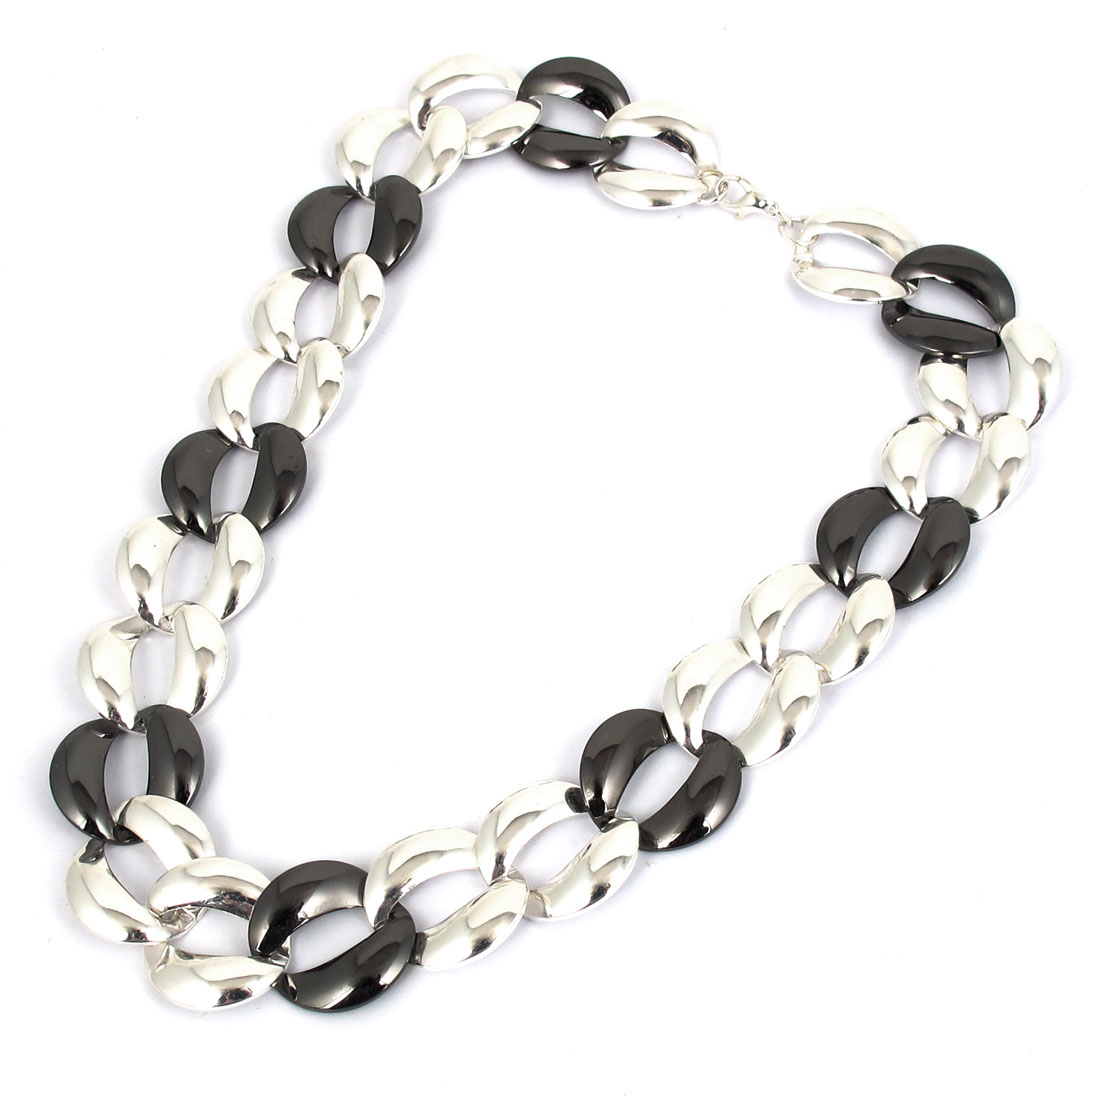 "Women Metal Thick Chain Strip Link Design Lobster Buckle Necklace Neckwear Collar Silver Tone Black 18.1"" Length"